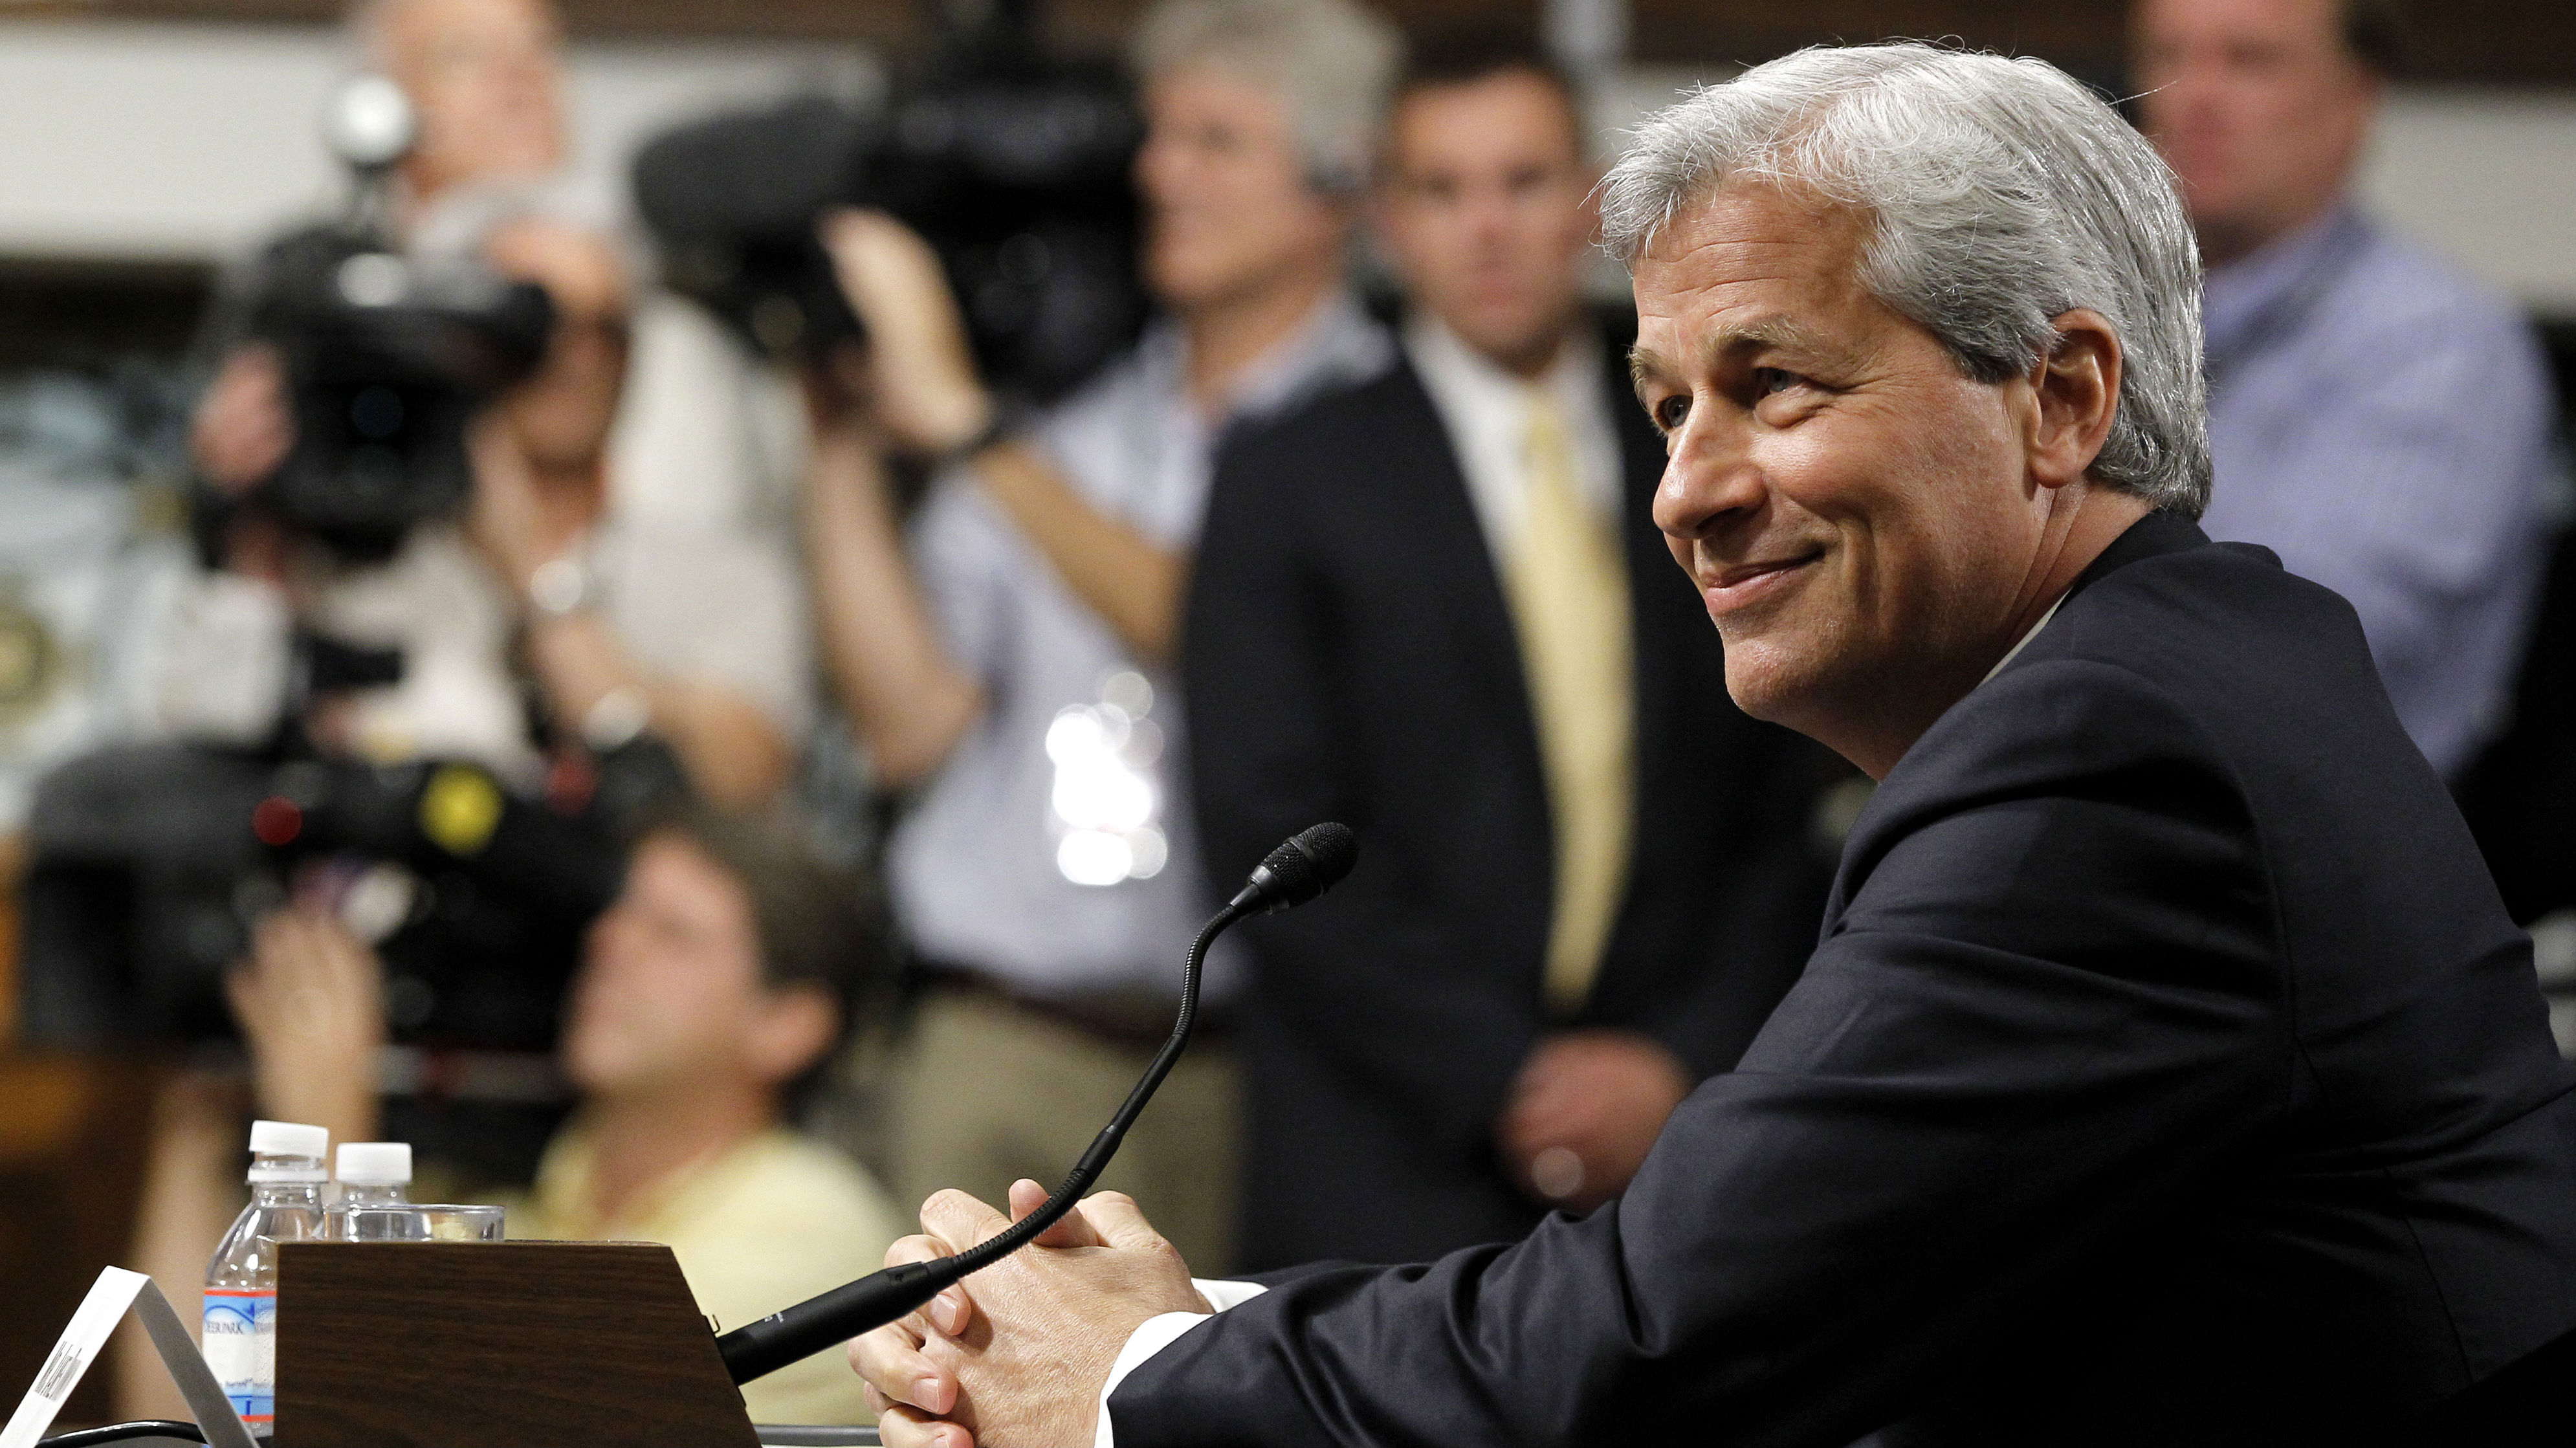 JPMorgan Chase CEO Jamie Dimon, head of the largest bank in the US, prepares to testify on Capitol Hill in Washington, Wednesday, June 13, 2012, before the Senate Banking Committee about how his company recently lost more than $2 billion on risky trades and whether its executives failed to properly manage those risks. (AP Photo/Haraz N. Ghanbari)